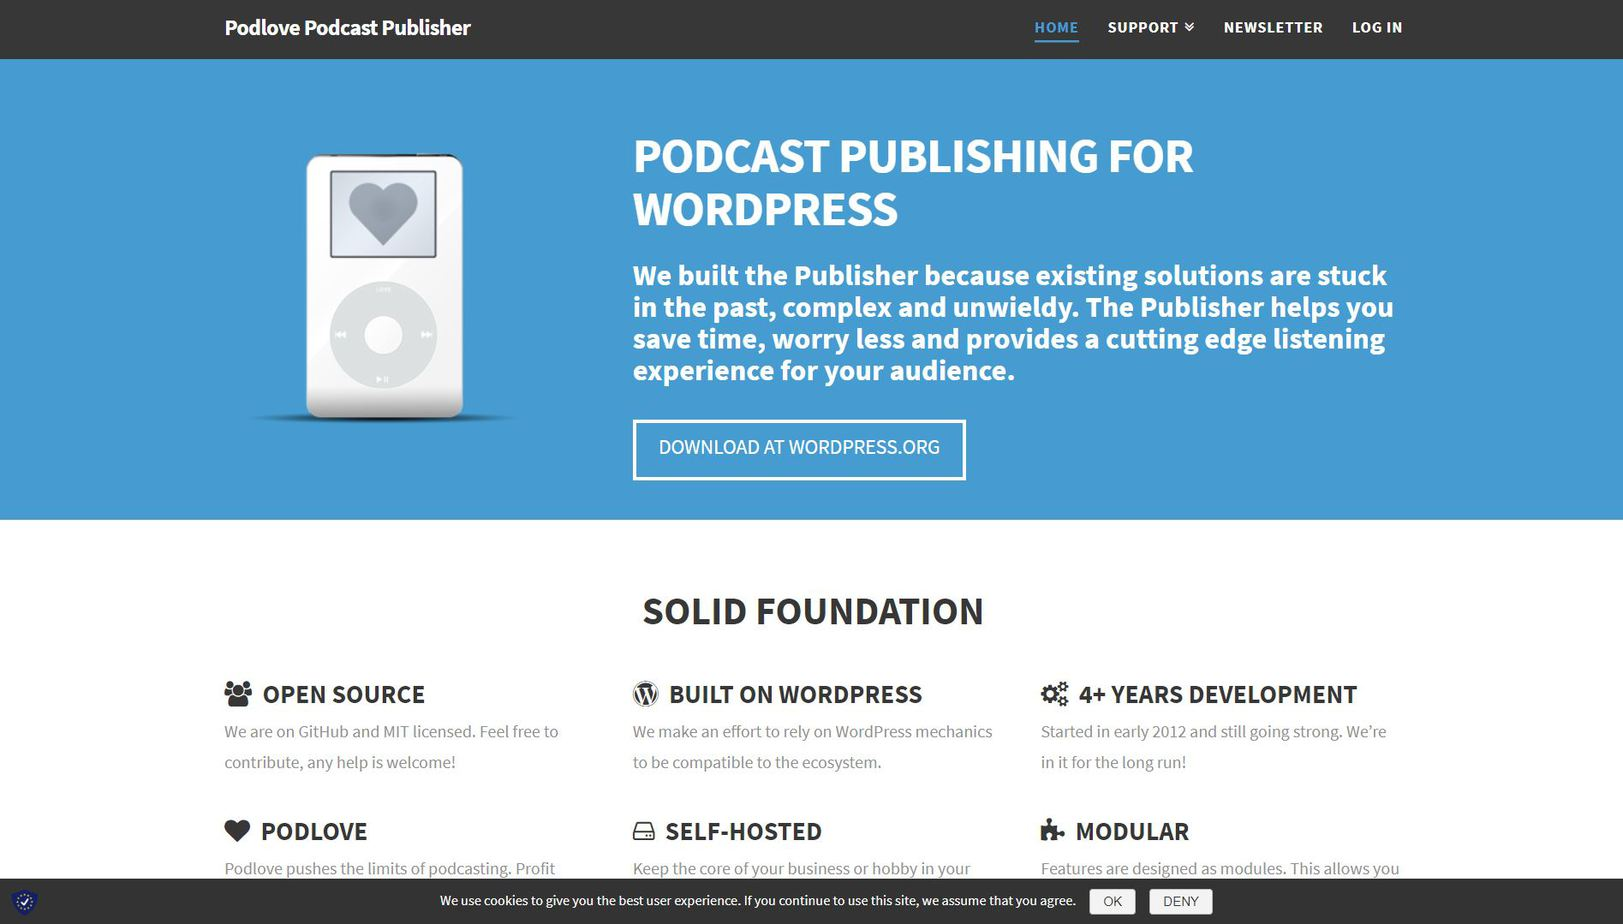 Podlove Podcast Publisher homepage.